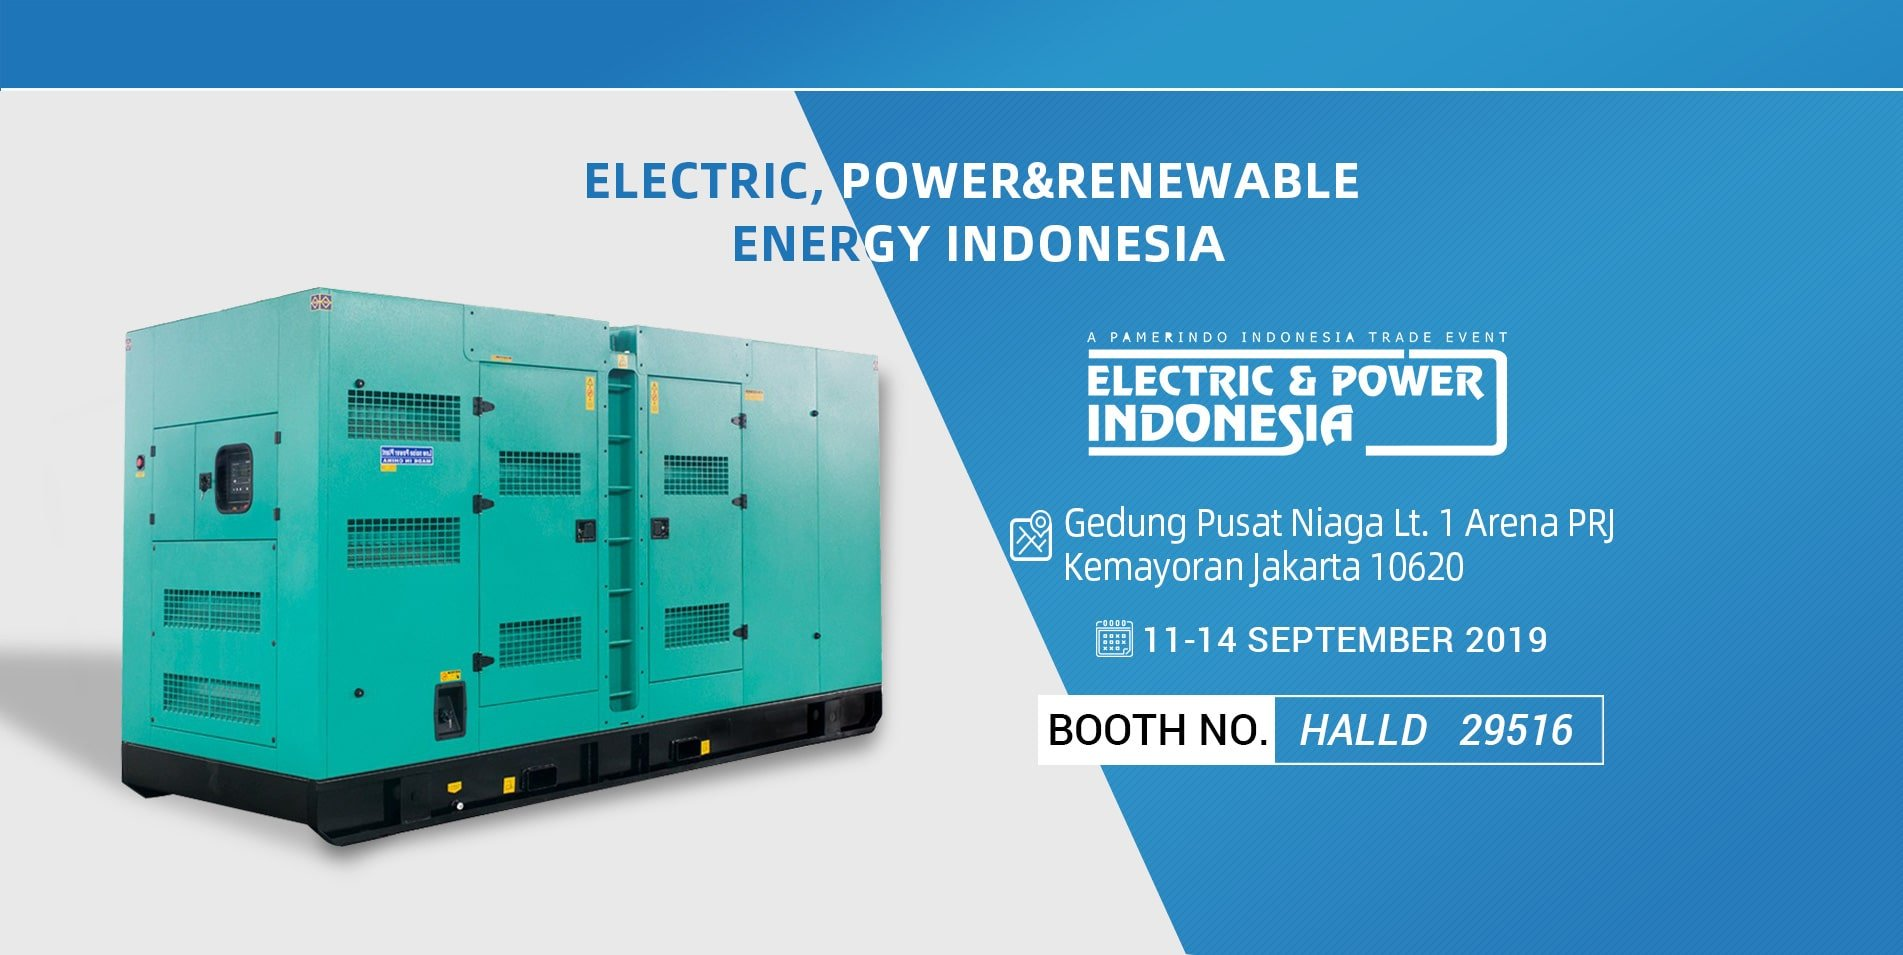 Electric, Power&Renewable Energy Indonesia 2019